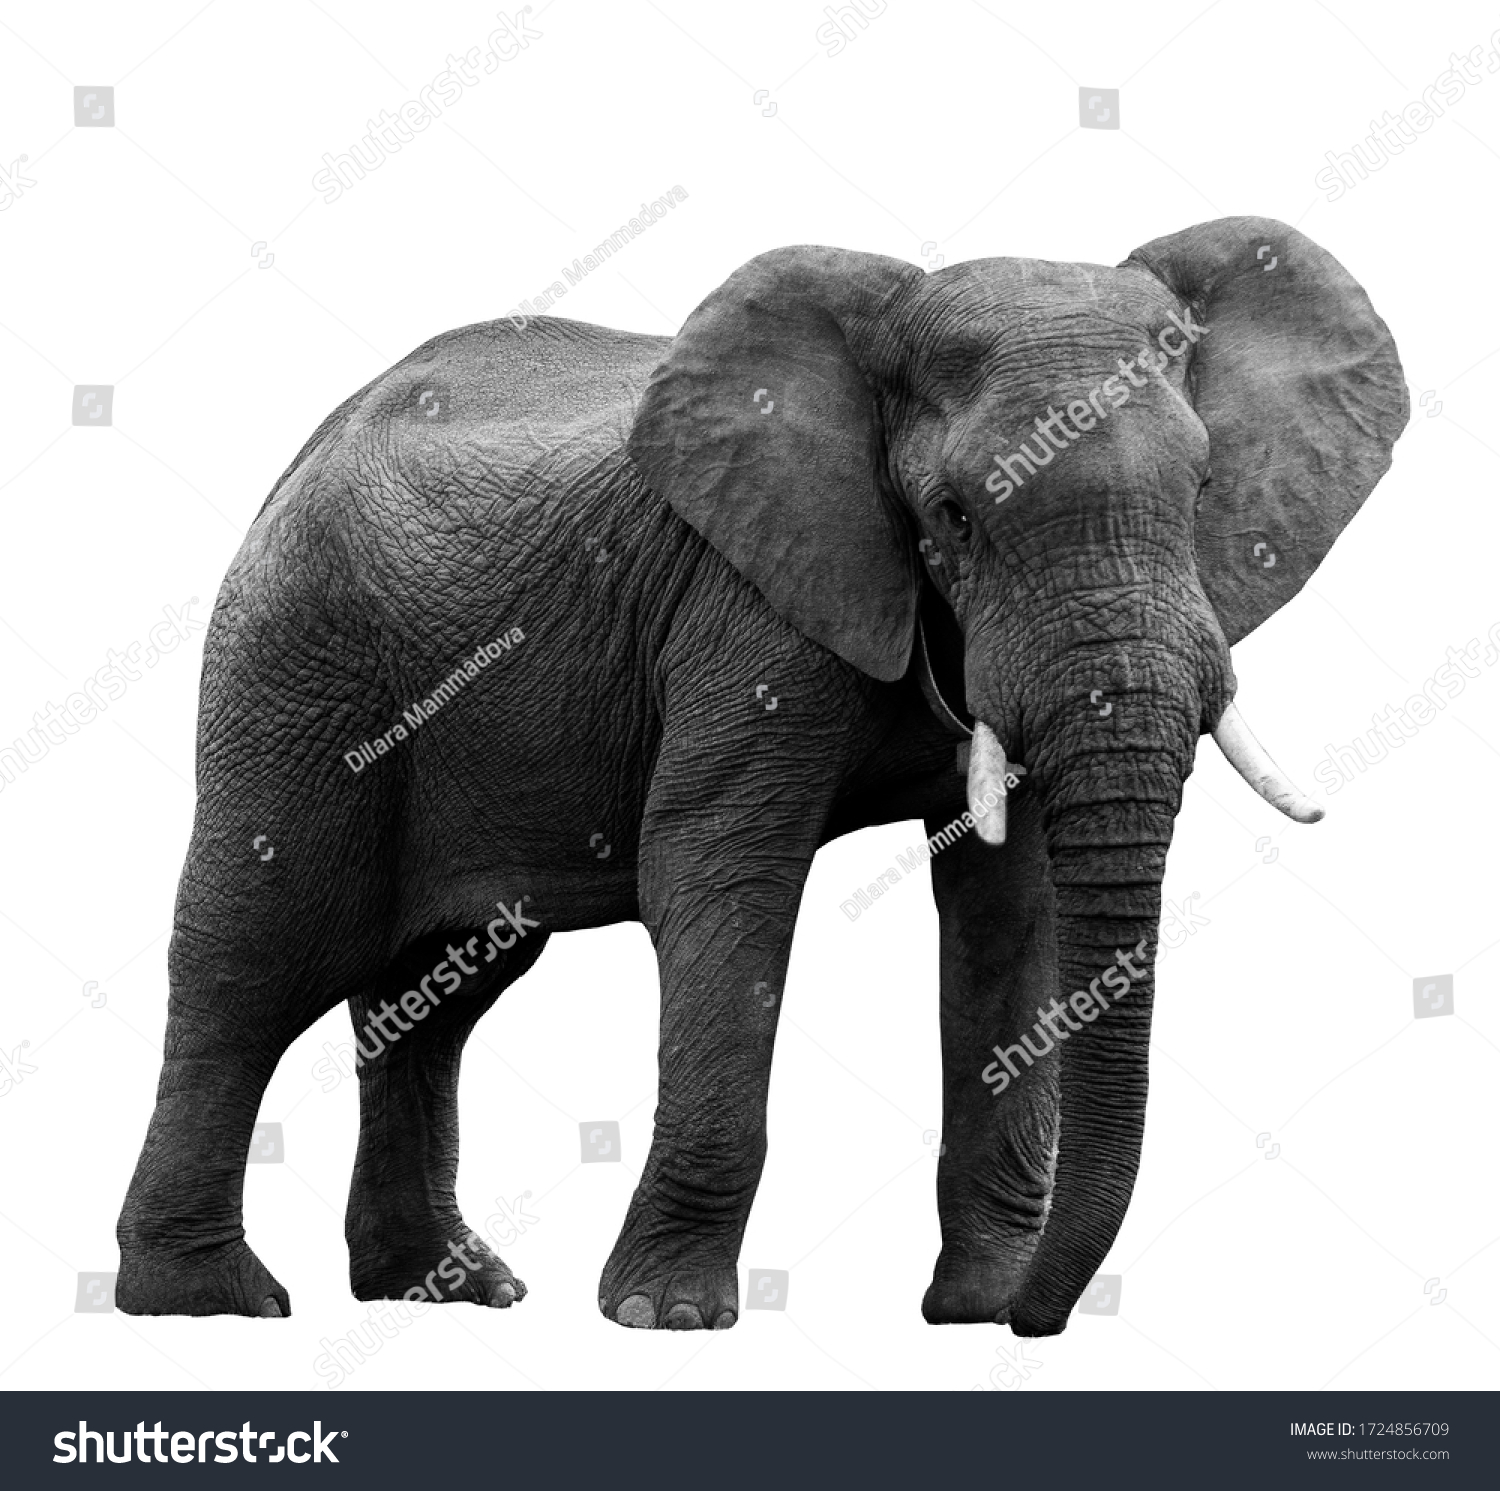 African elephant at the zoo, isolated on white background #1724856709